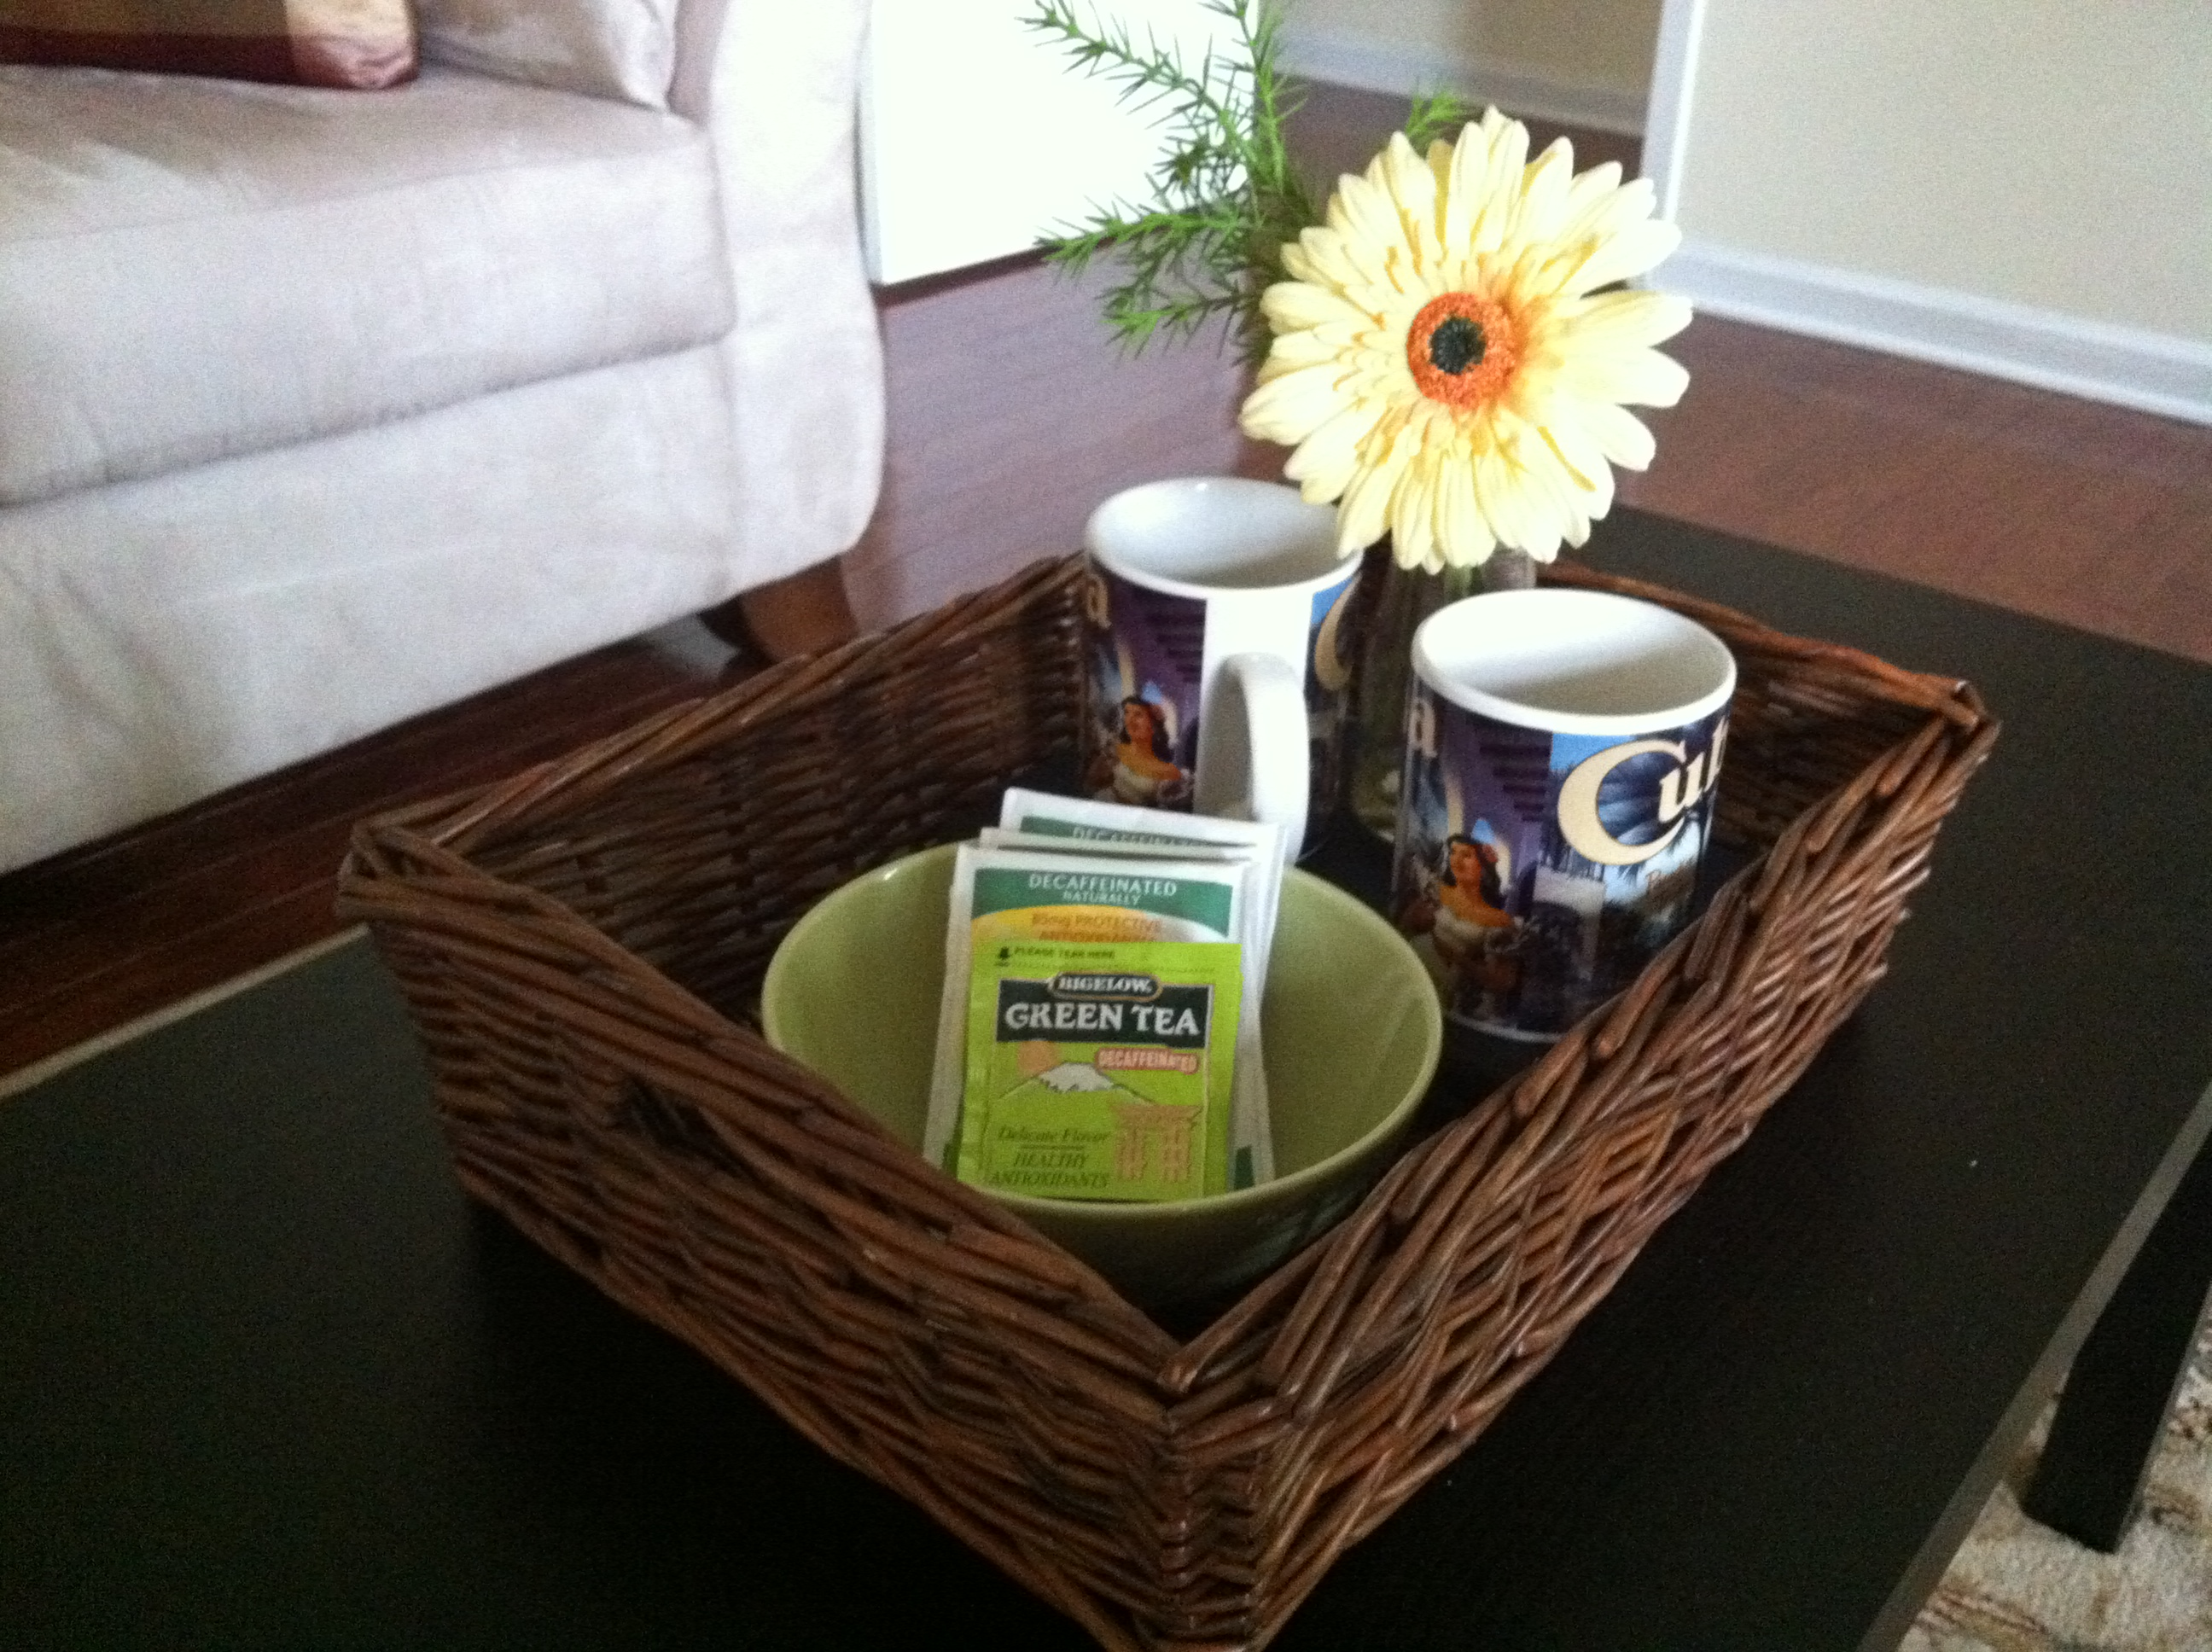 Staging & Decorating with Serving Trays